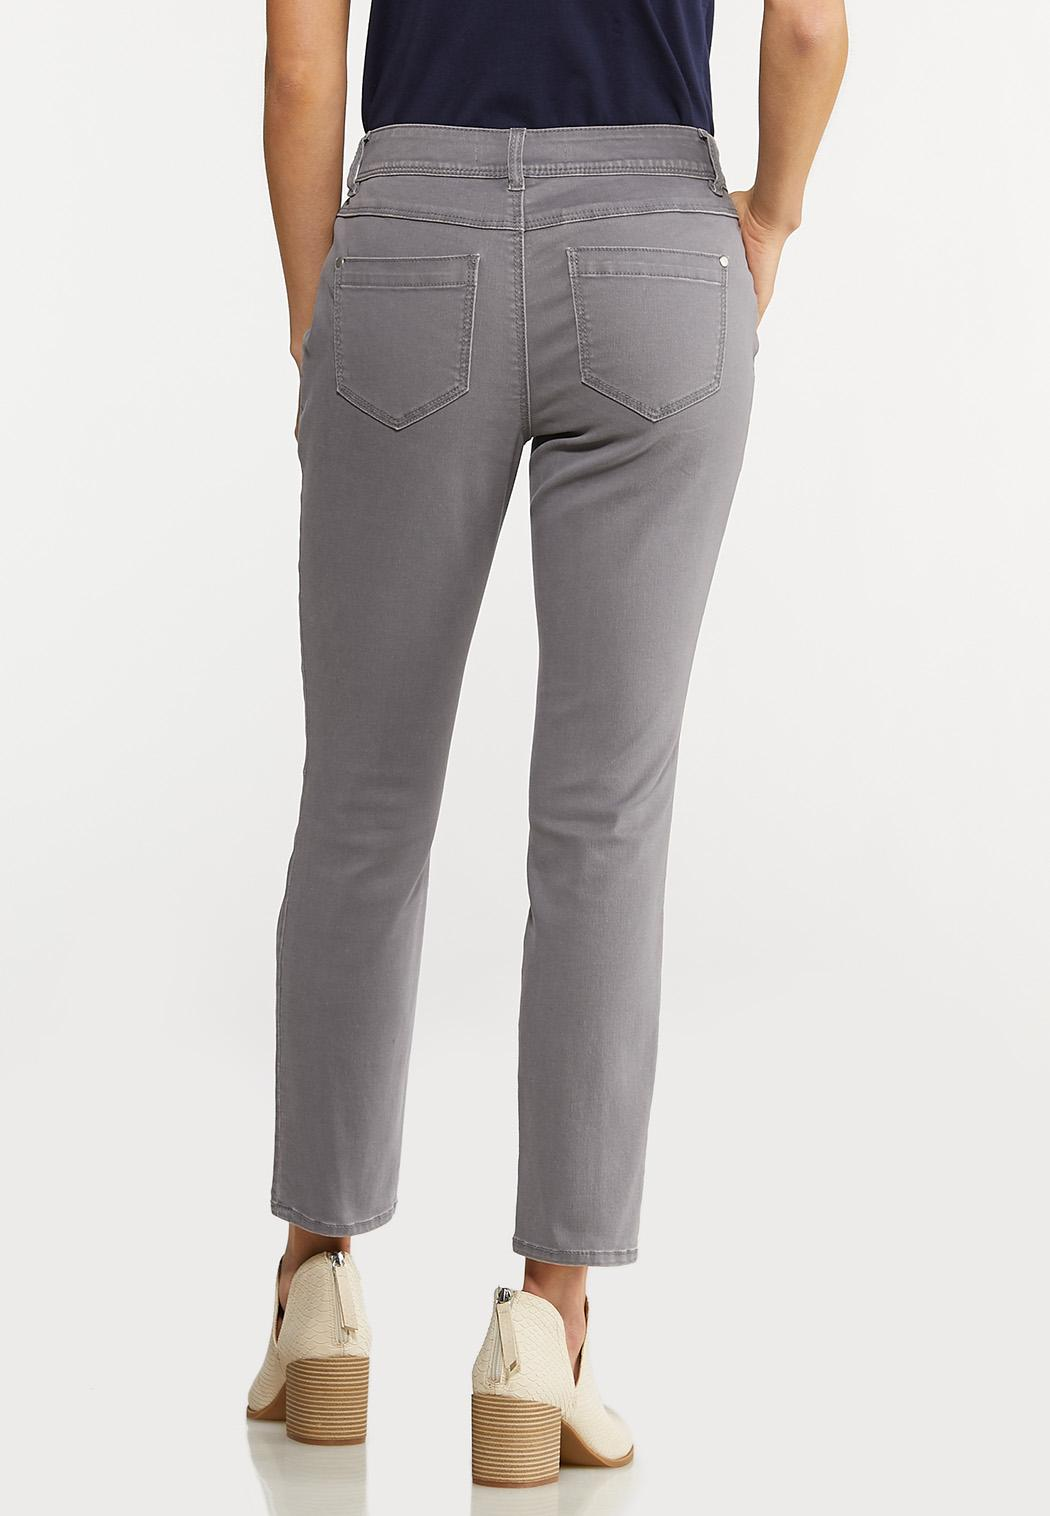 Gray Ankle Pants (Item #44068295)